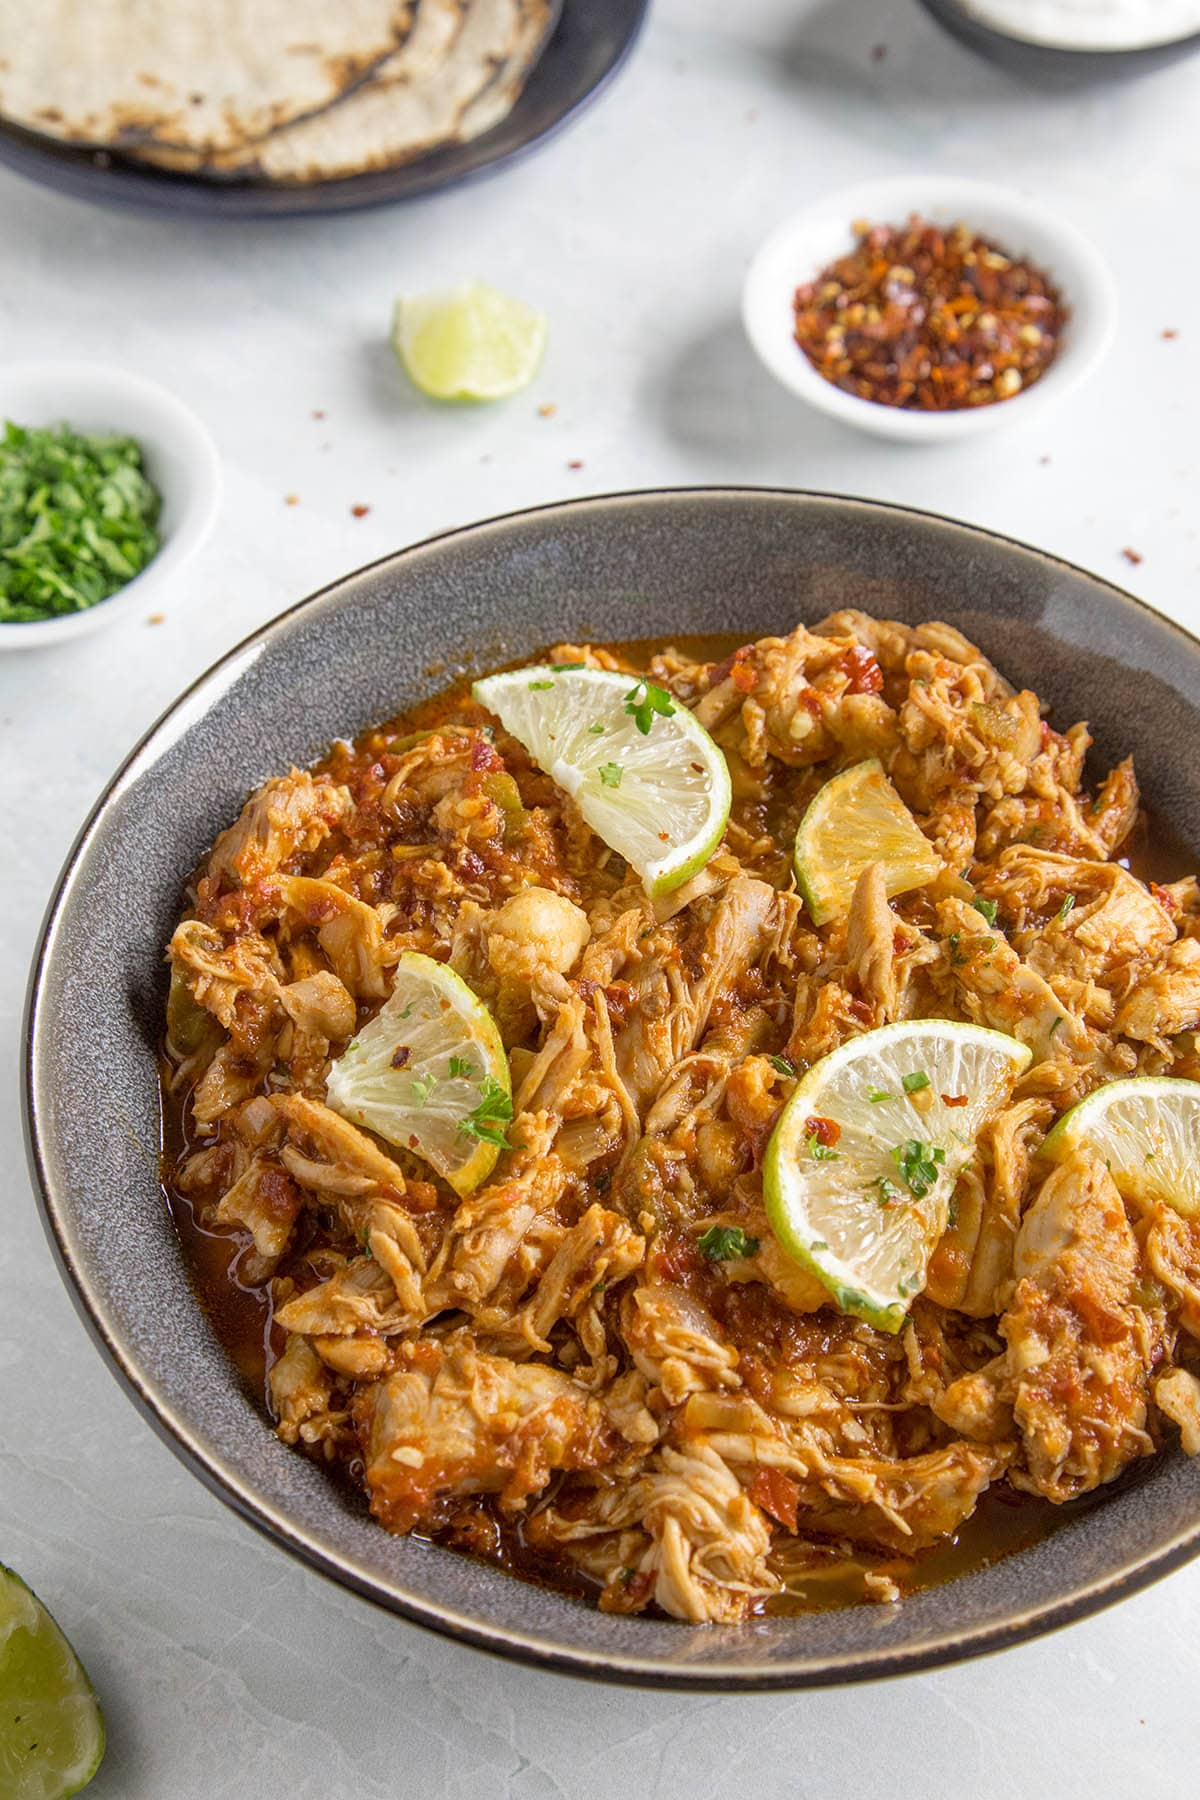 Chicken Tinga (Chipotle Shredded Chicken)